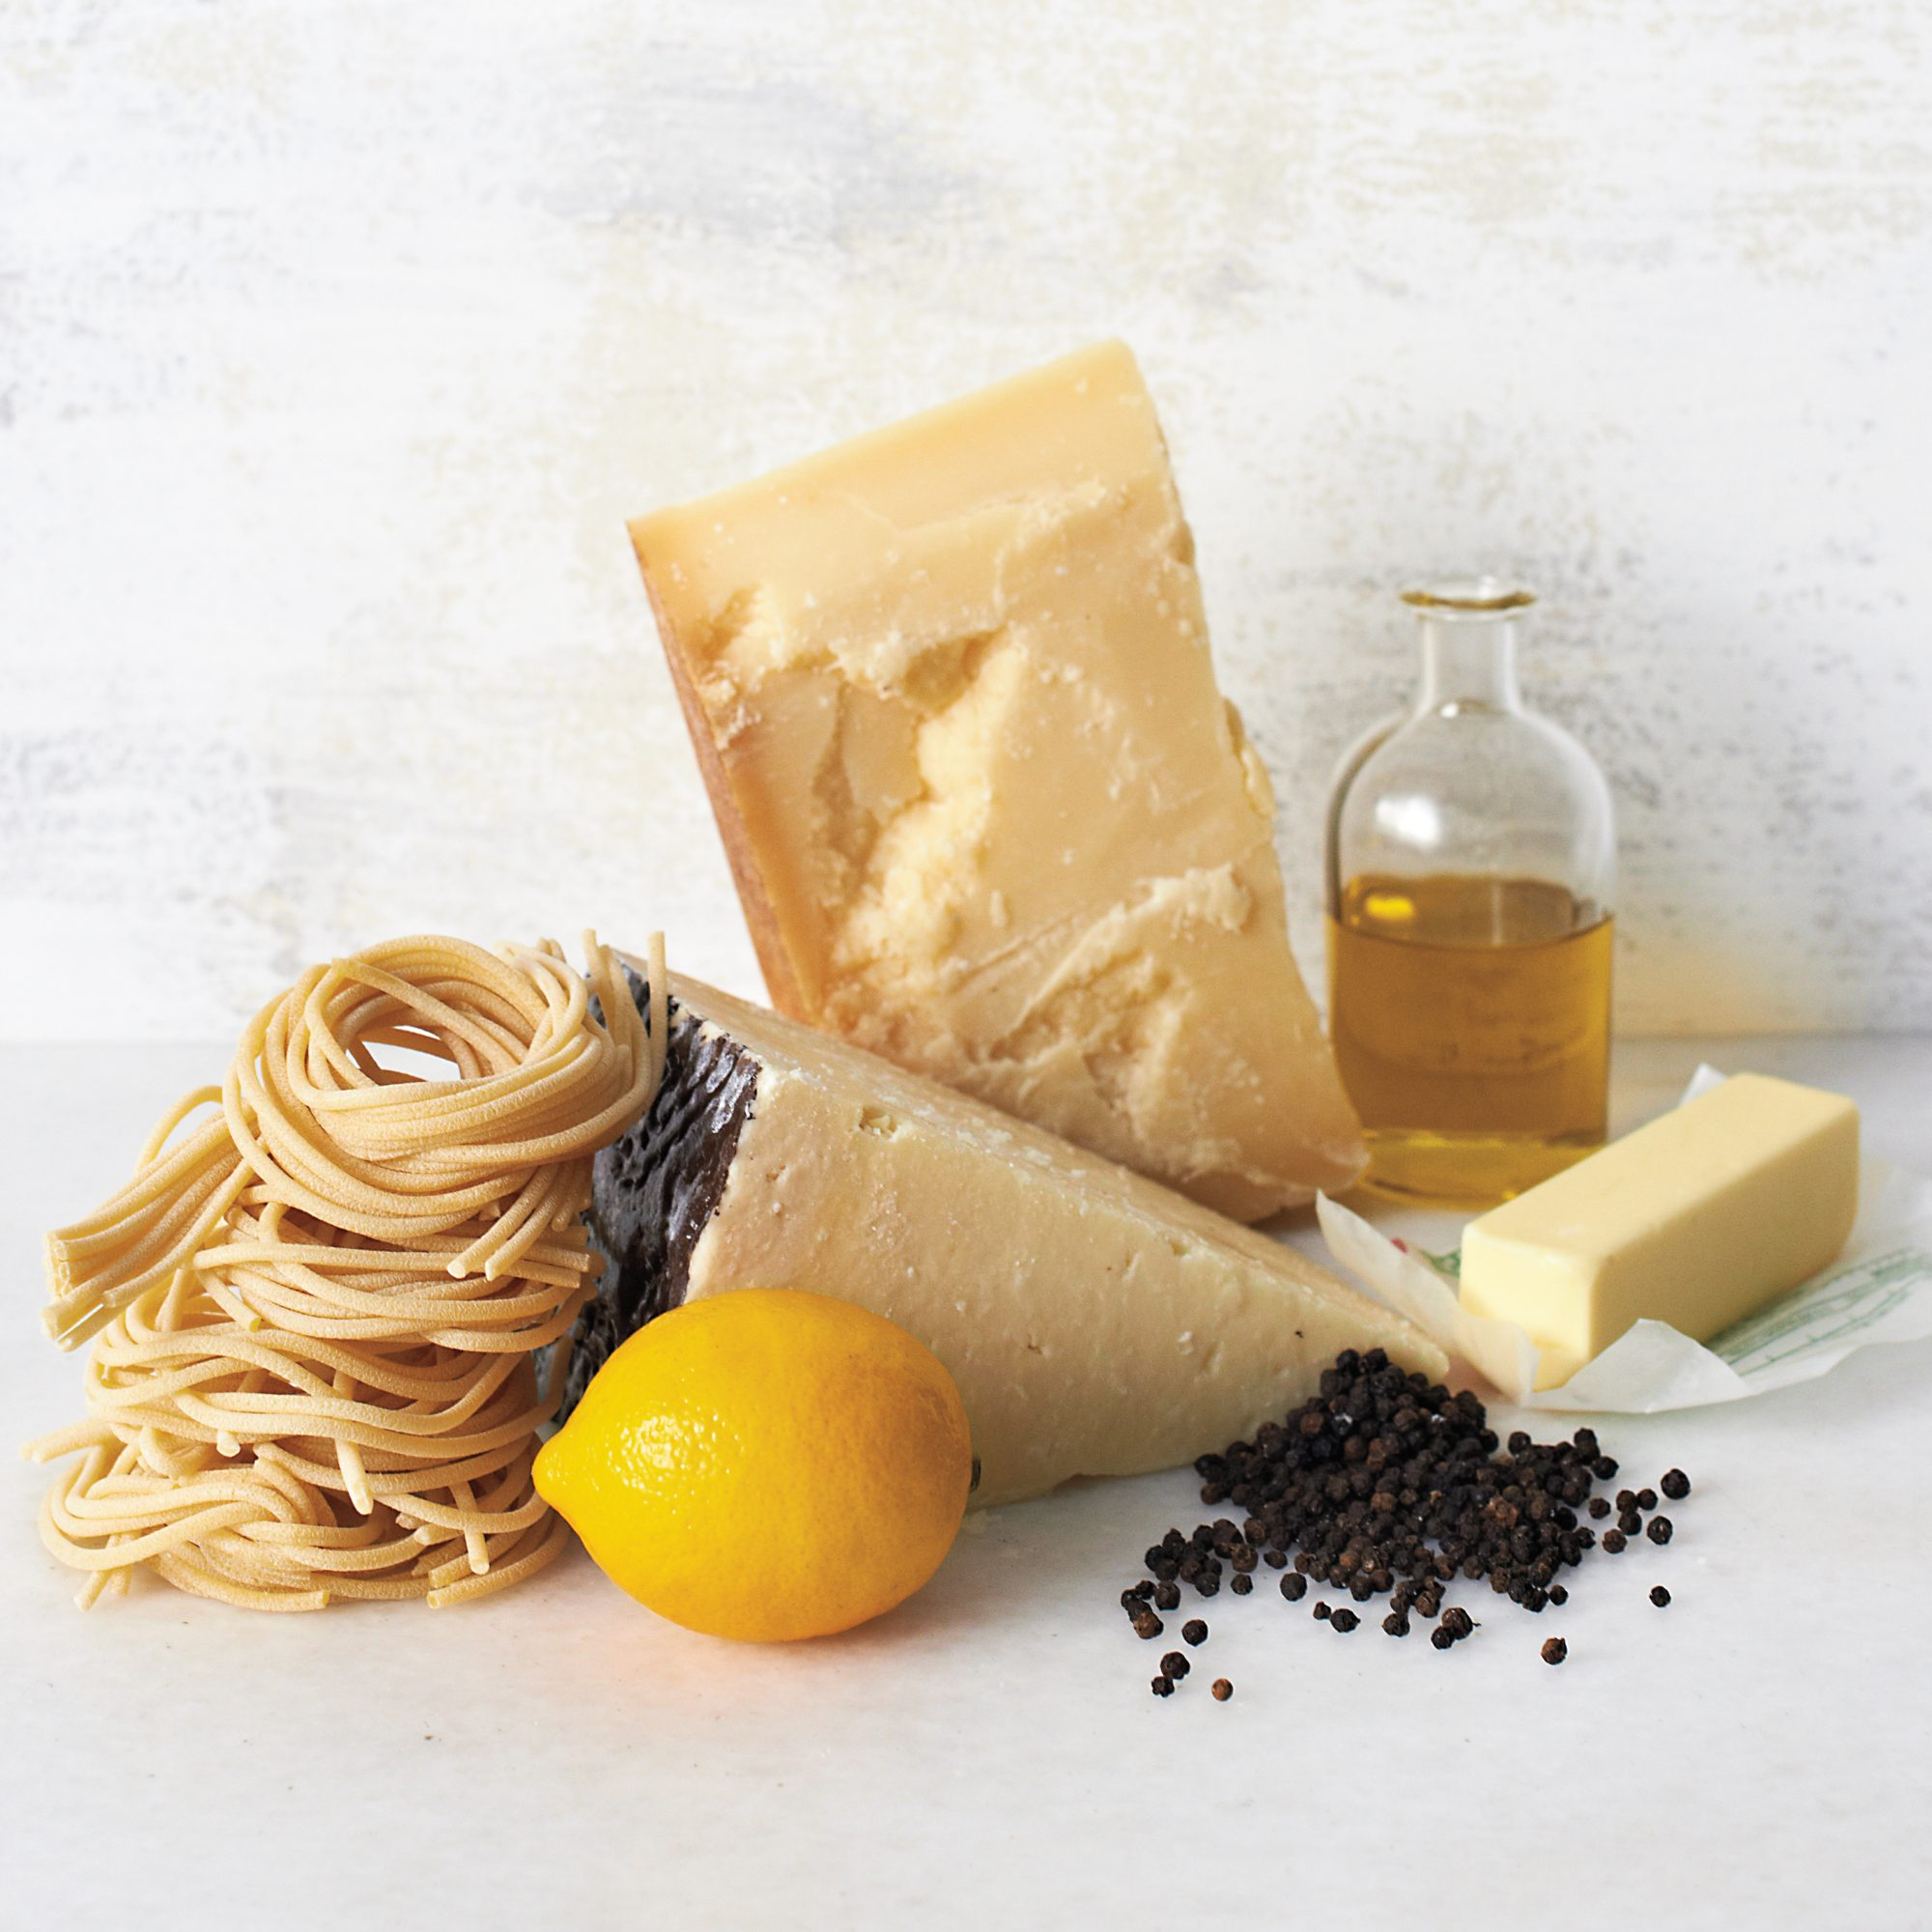 pasta, cheese, butter, olive oil, pepper